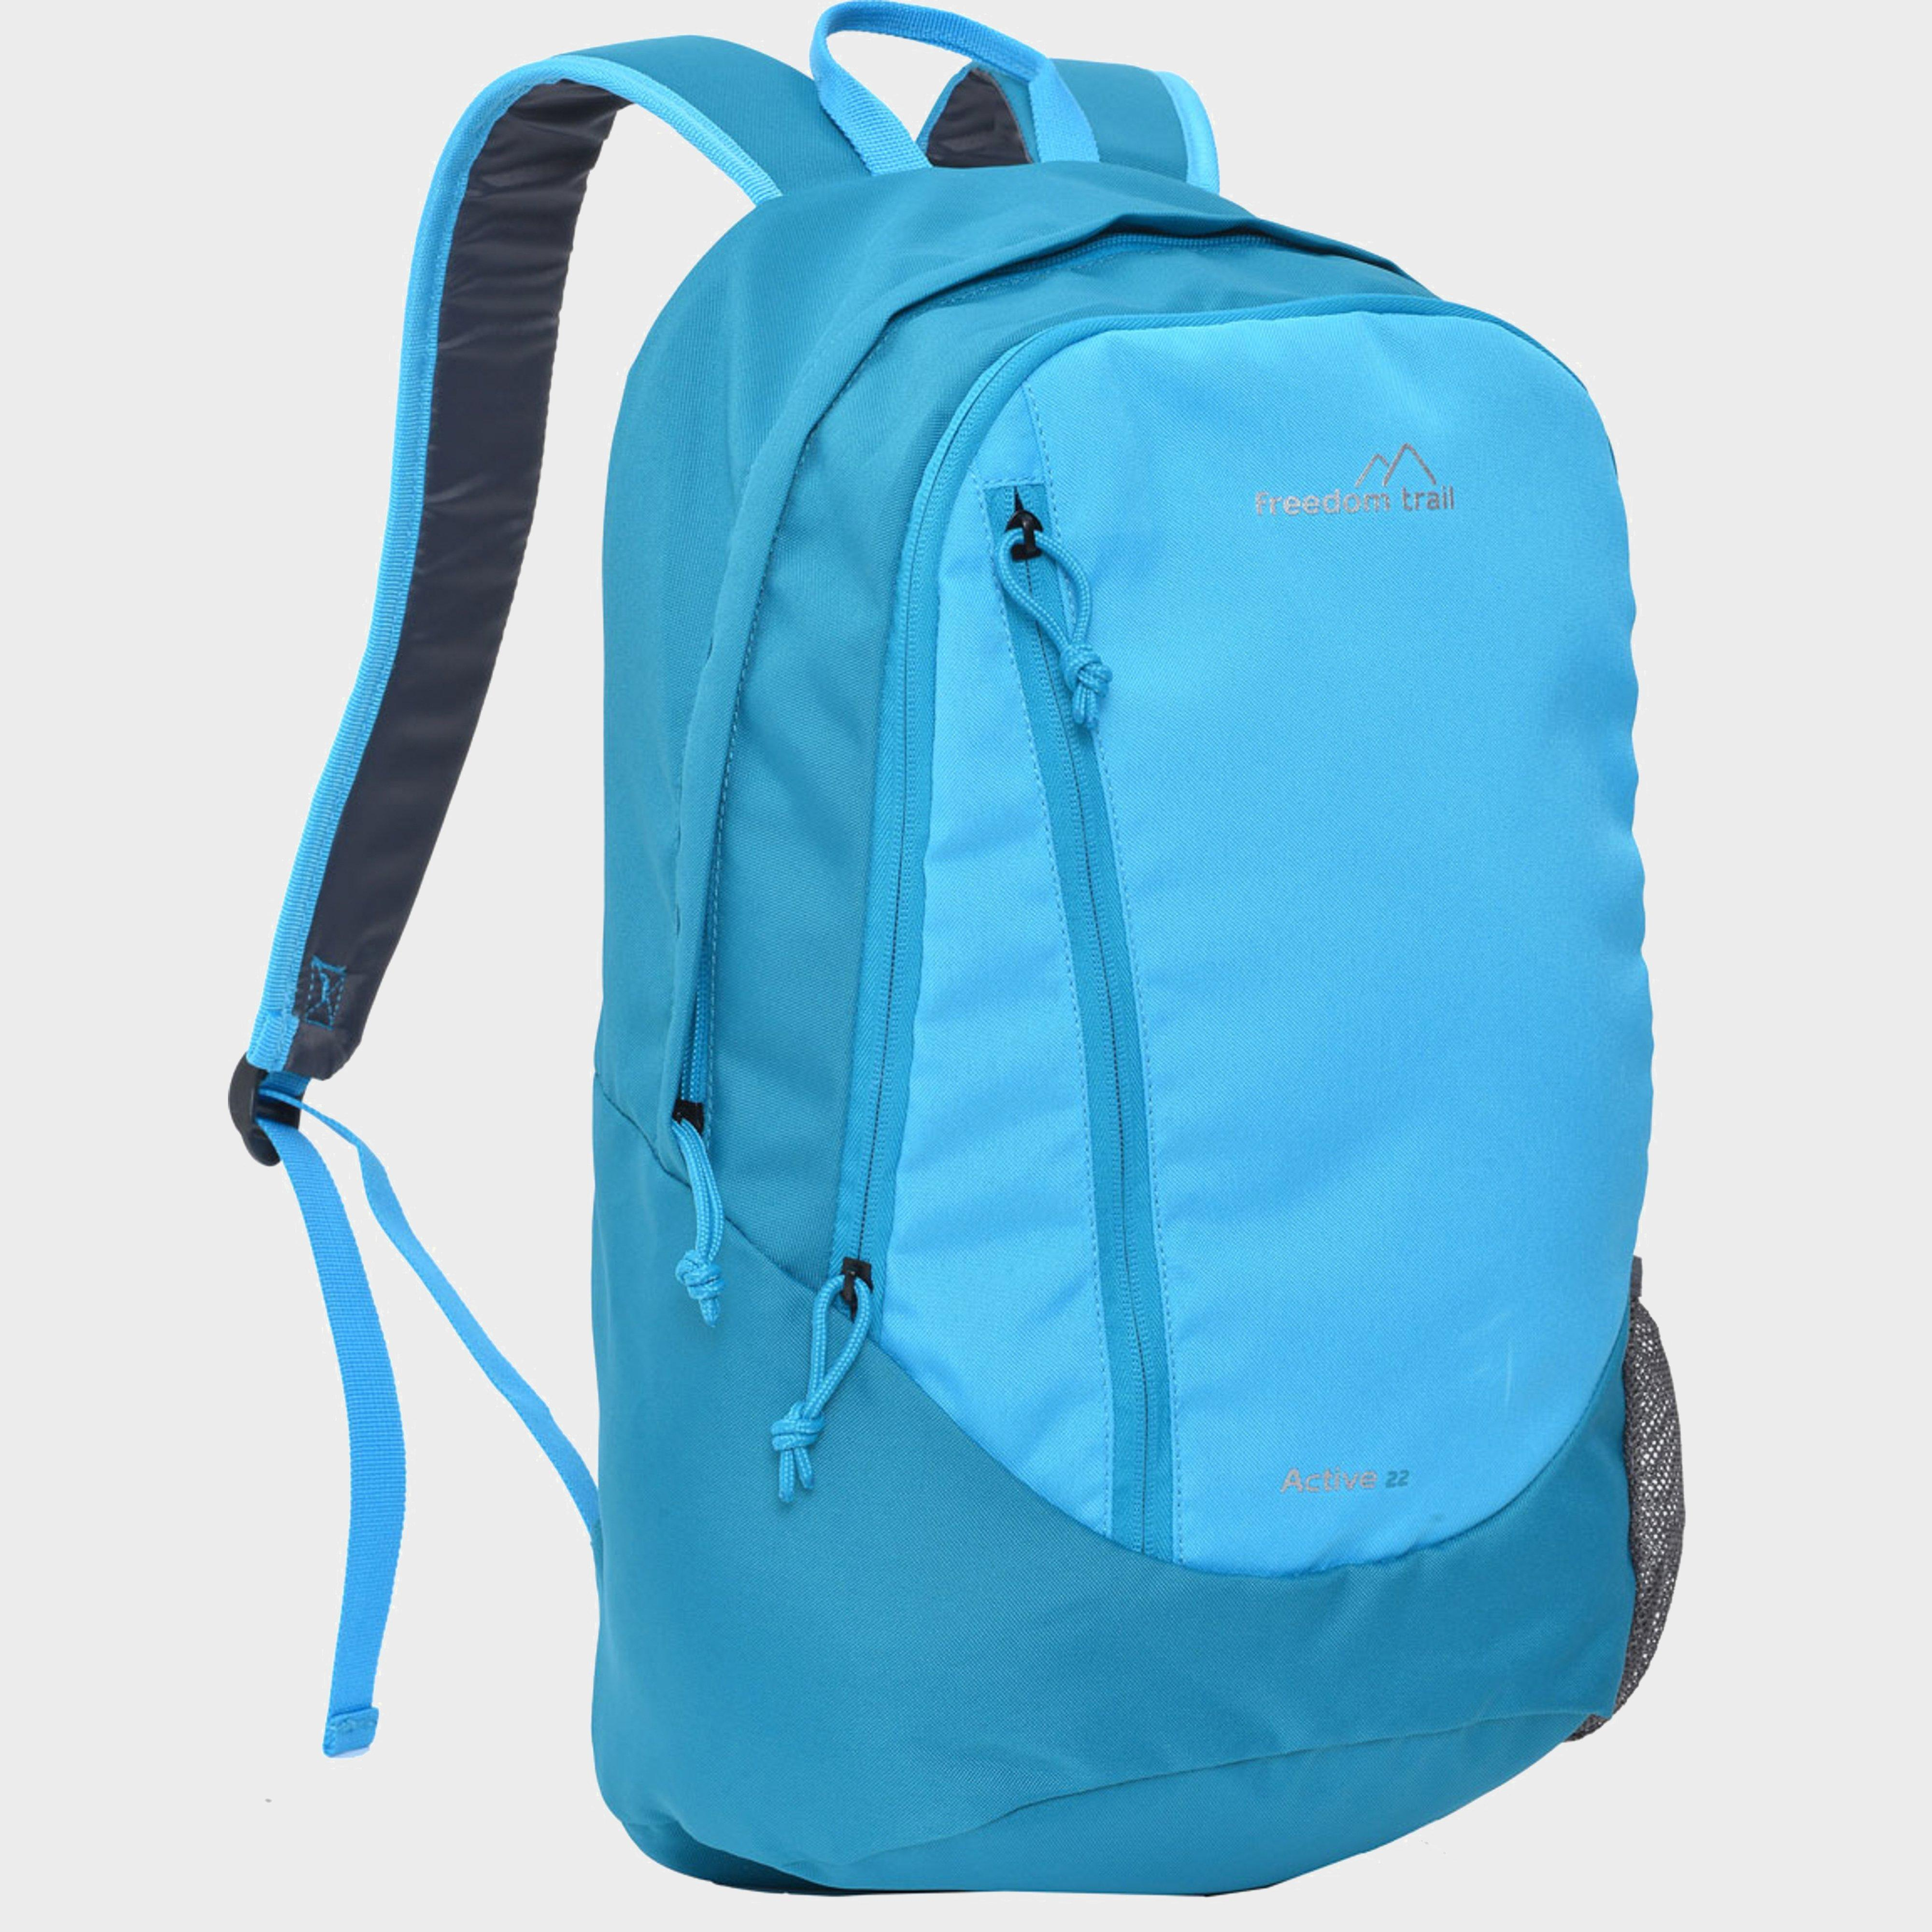 Freedomtrail Freedomtrail Active 22 Daypack